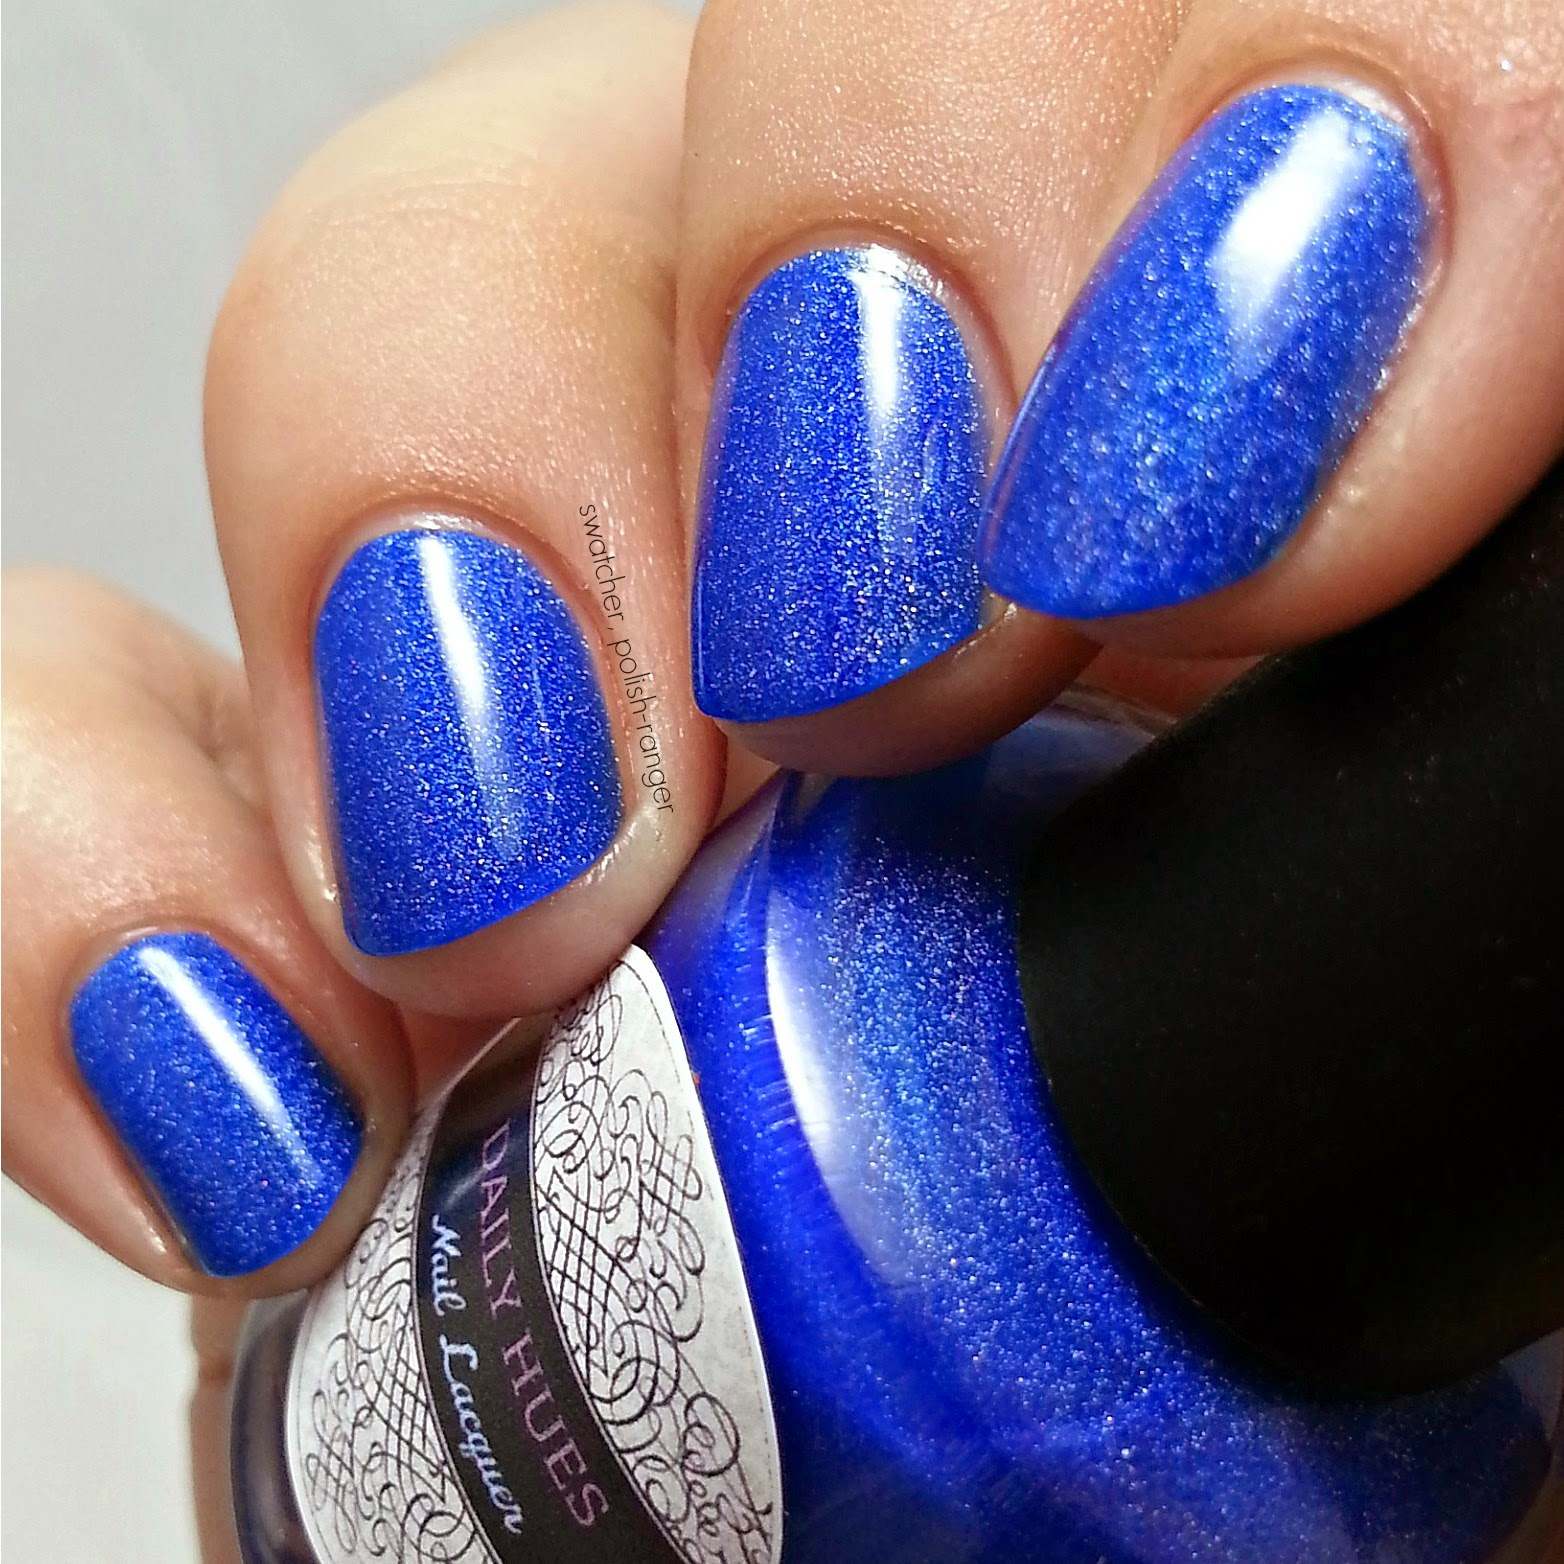 swatcher, polish-ranger | Daily Hues Nail Lacquer Selina swatch